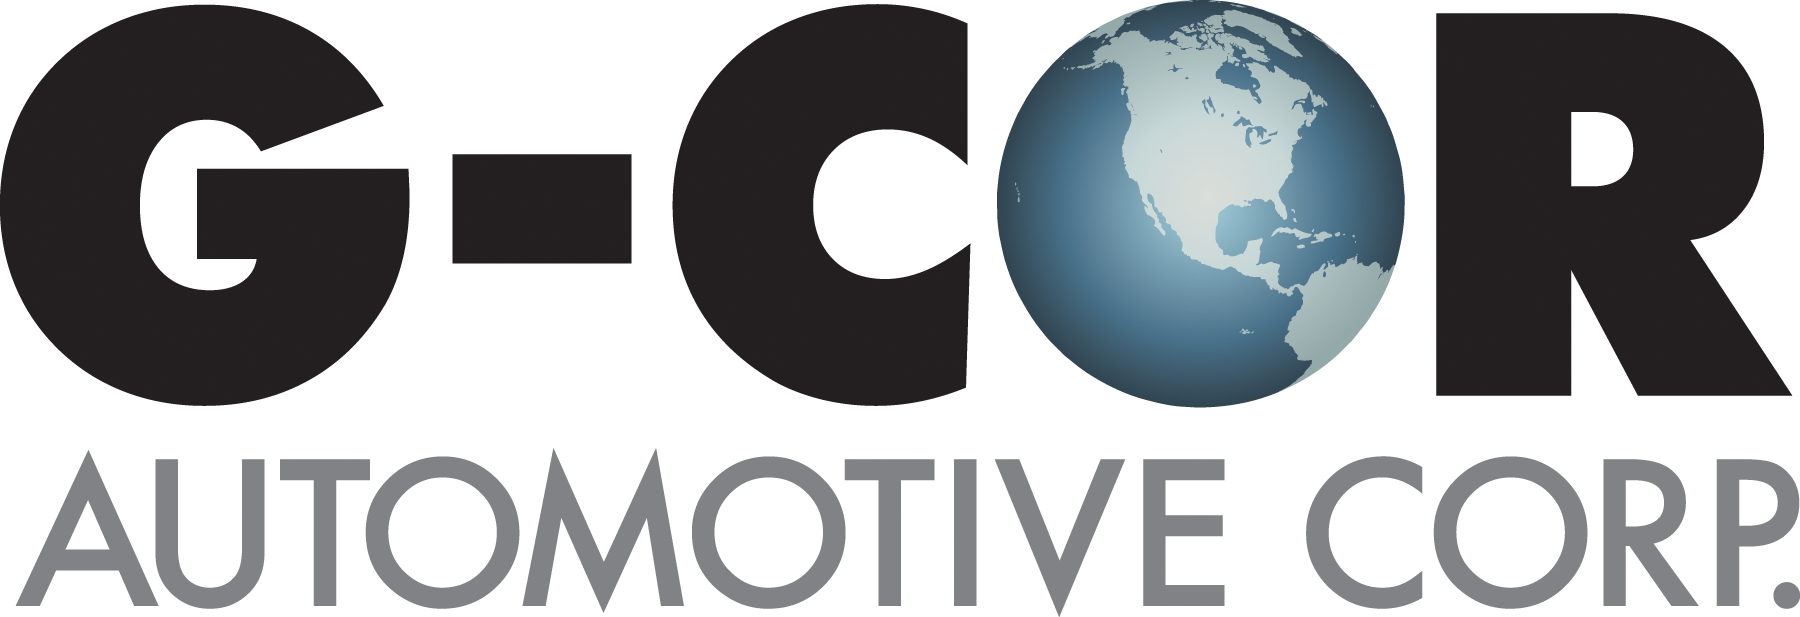 G-Cor Automotive Group